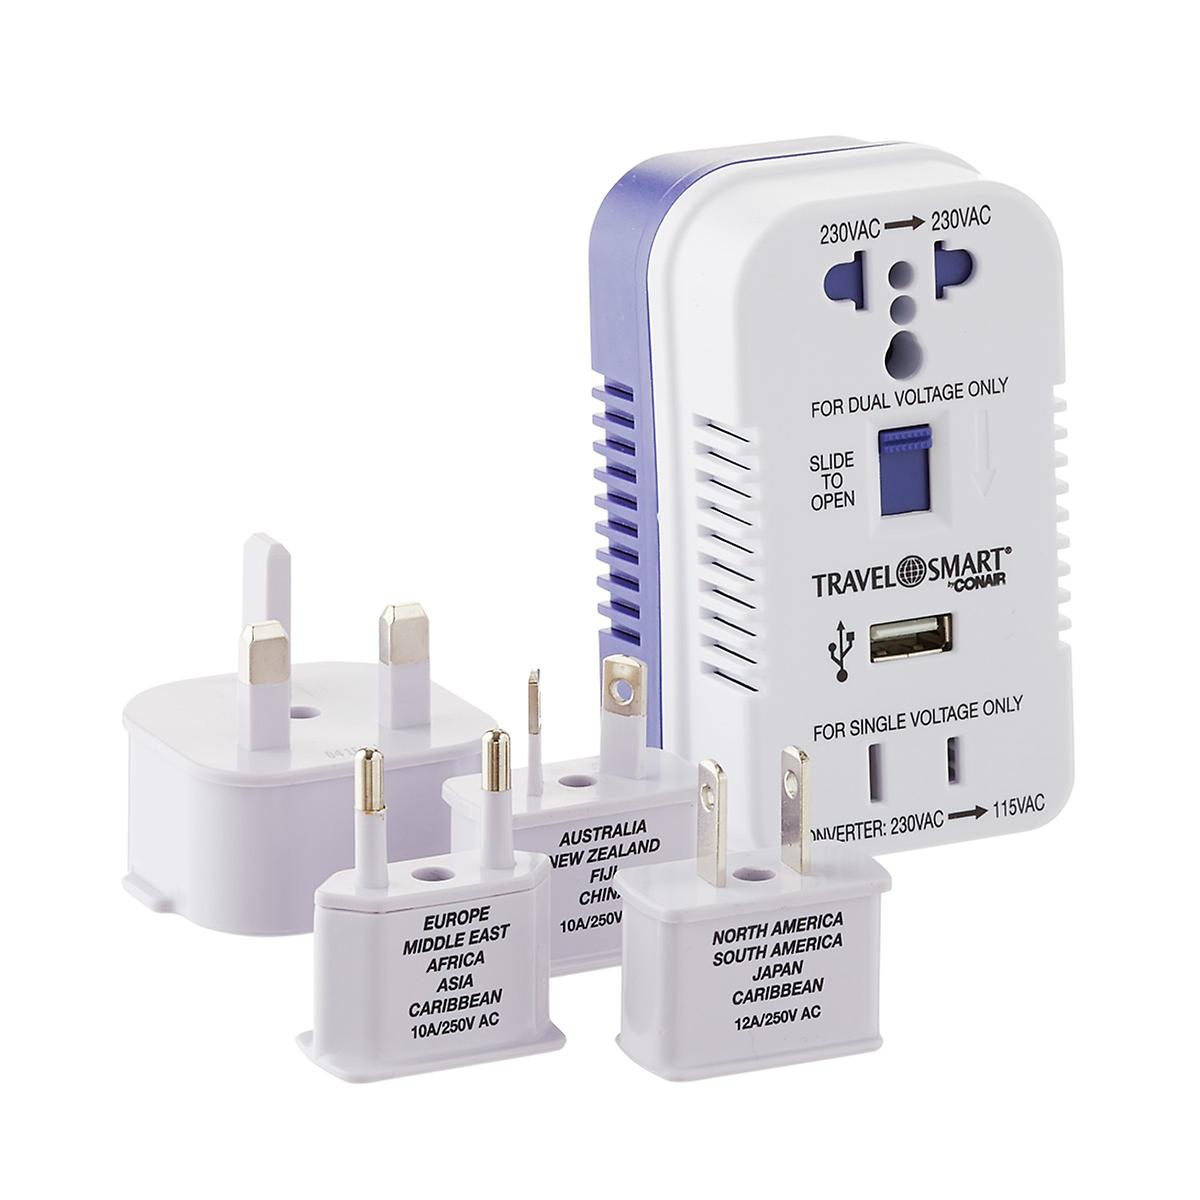 2-Outlet Converter & Adapter Set with USB